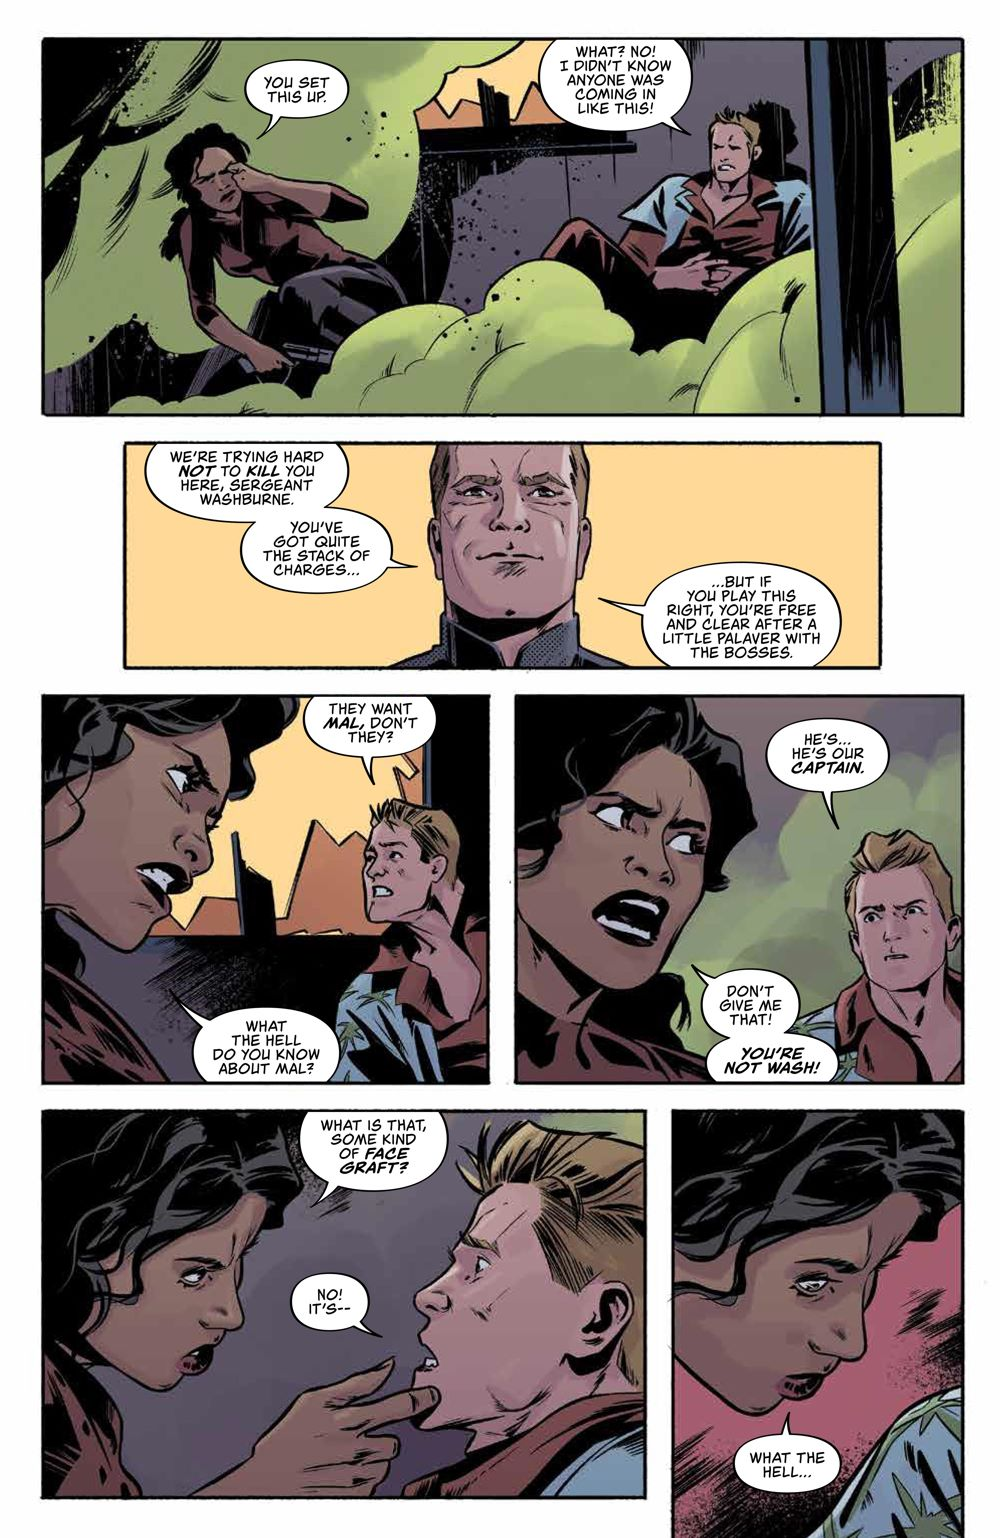 Firefly_026_PRESS_5 ComicList Previews: FIREFLY #26